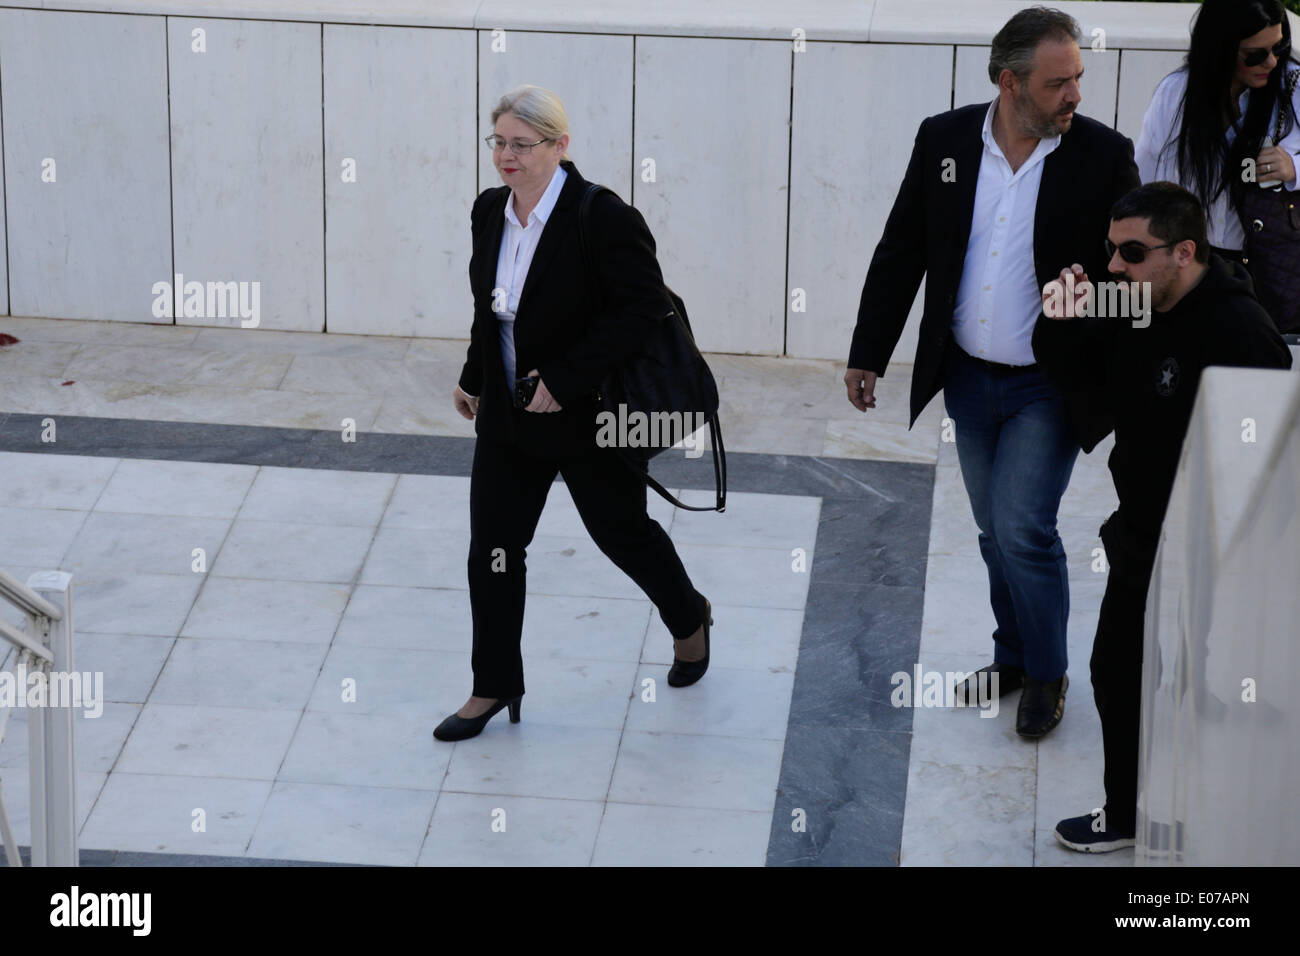 Athens, Greece. 5th May 2014. Golden Dawn's MP Eleni Zaroulia arrives at the Athens Supreme Cour. Golden Dawn MPs were invited by the Special Appellate magistrate, to account for the category of membership and directing a criminal organization. Athens, Greece on May 5, 2014. Credit:  Konstantinos Tsakalidis/Alamy Live News - Stock Image